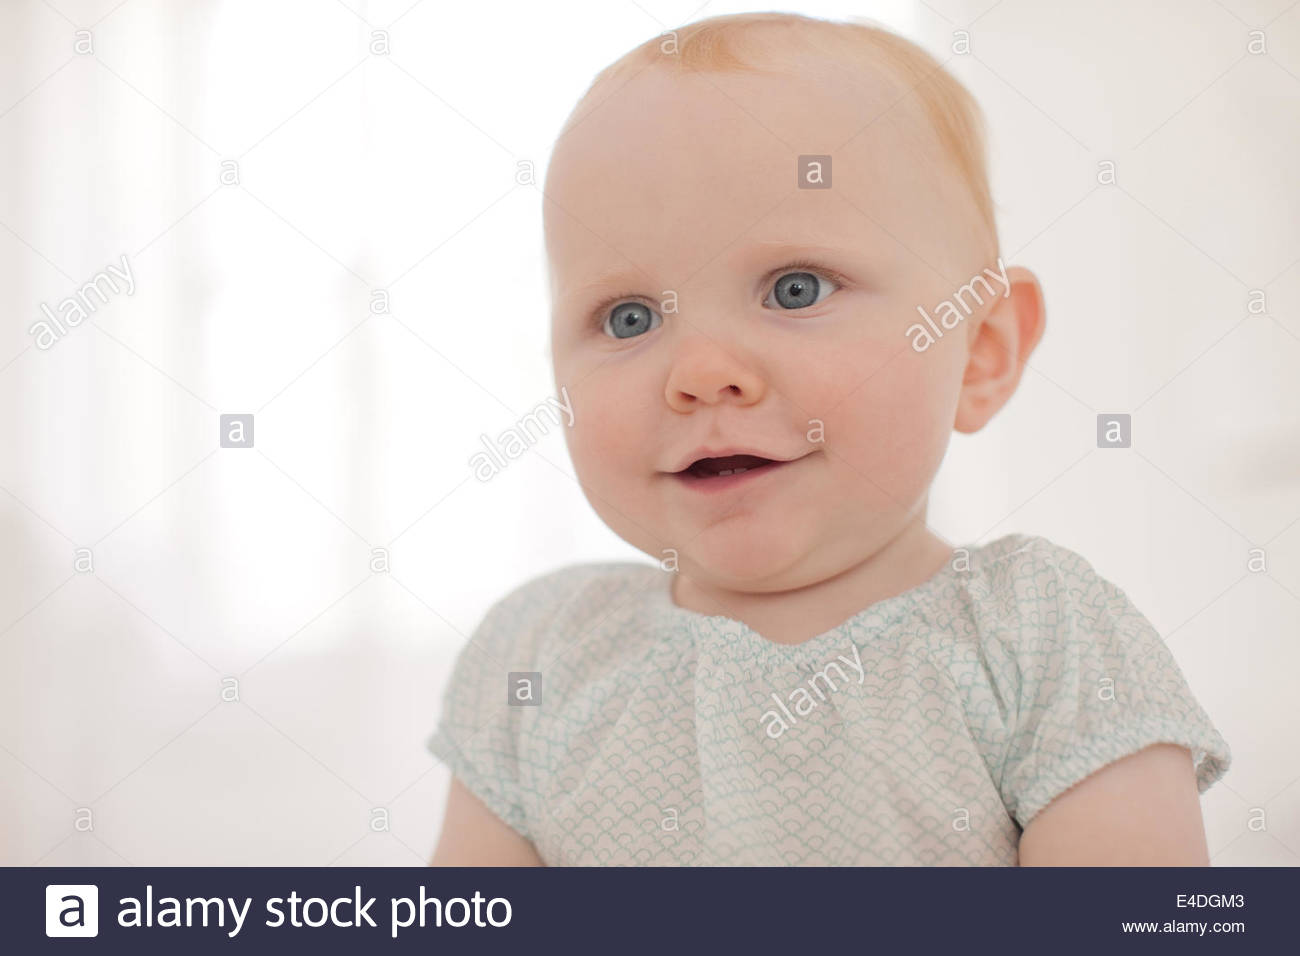 Smiling baby sitting on floor - Stock Image